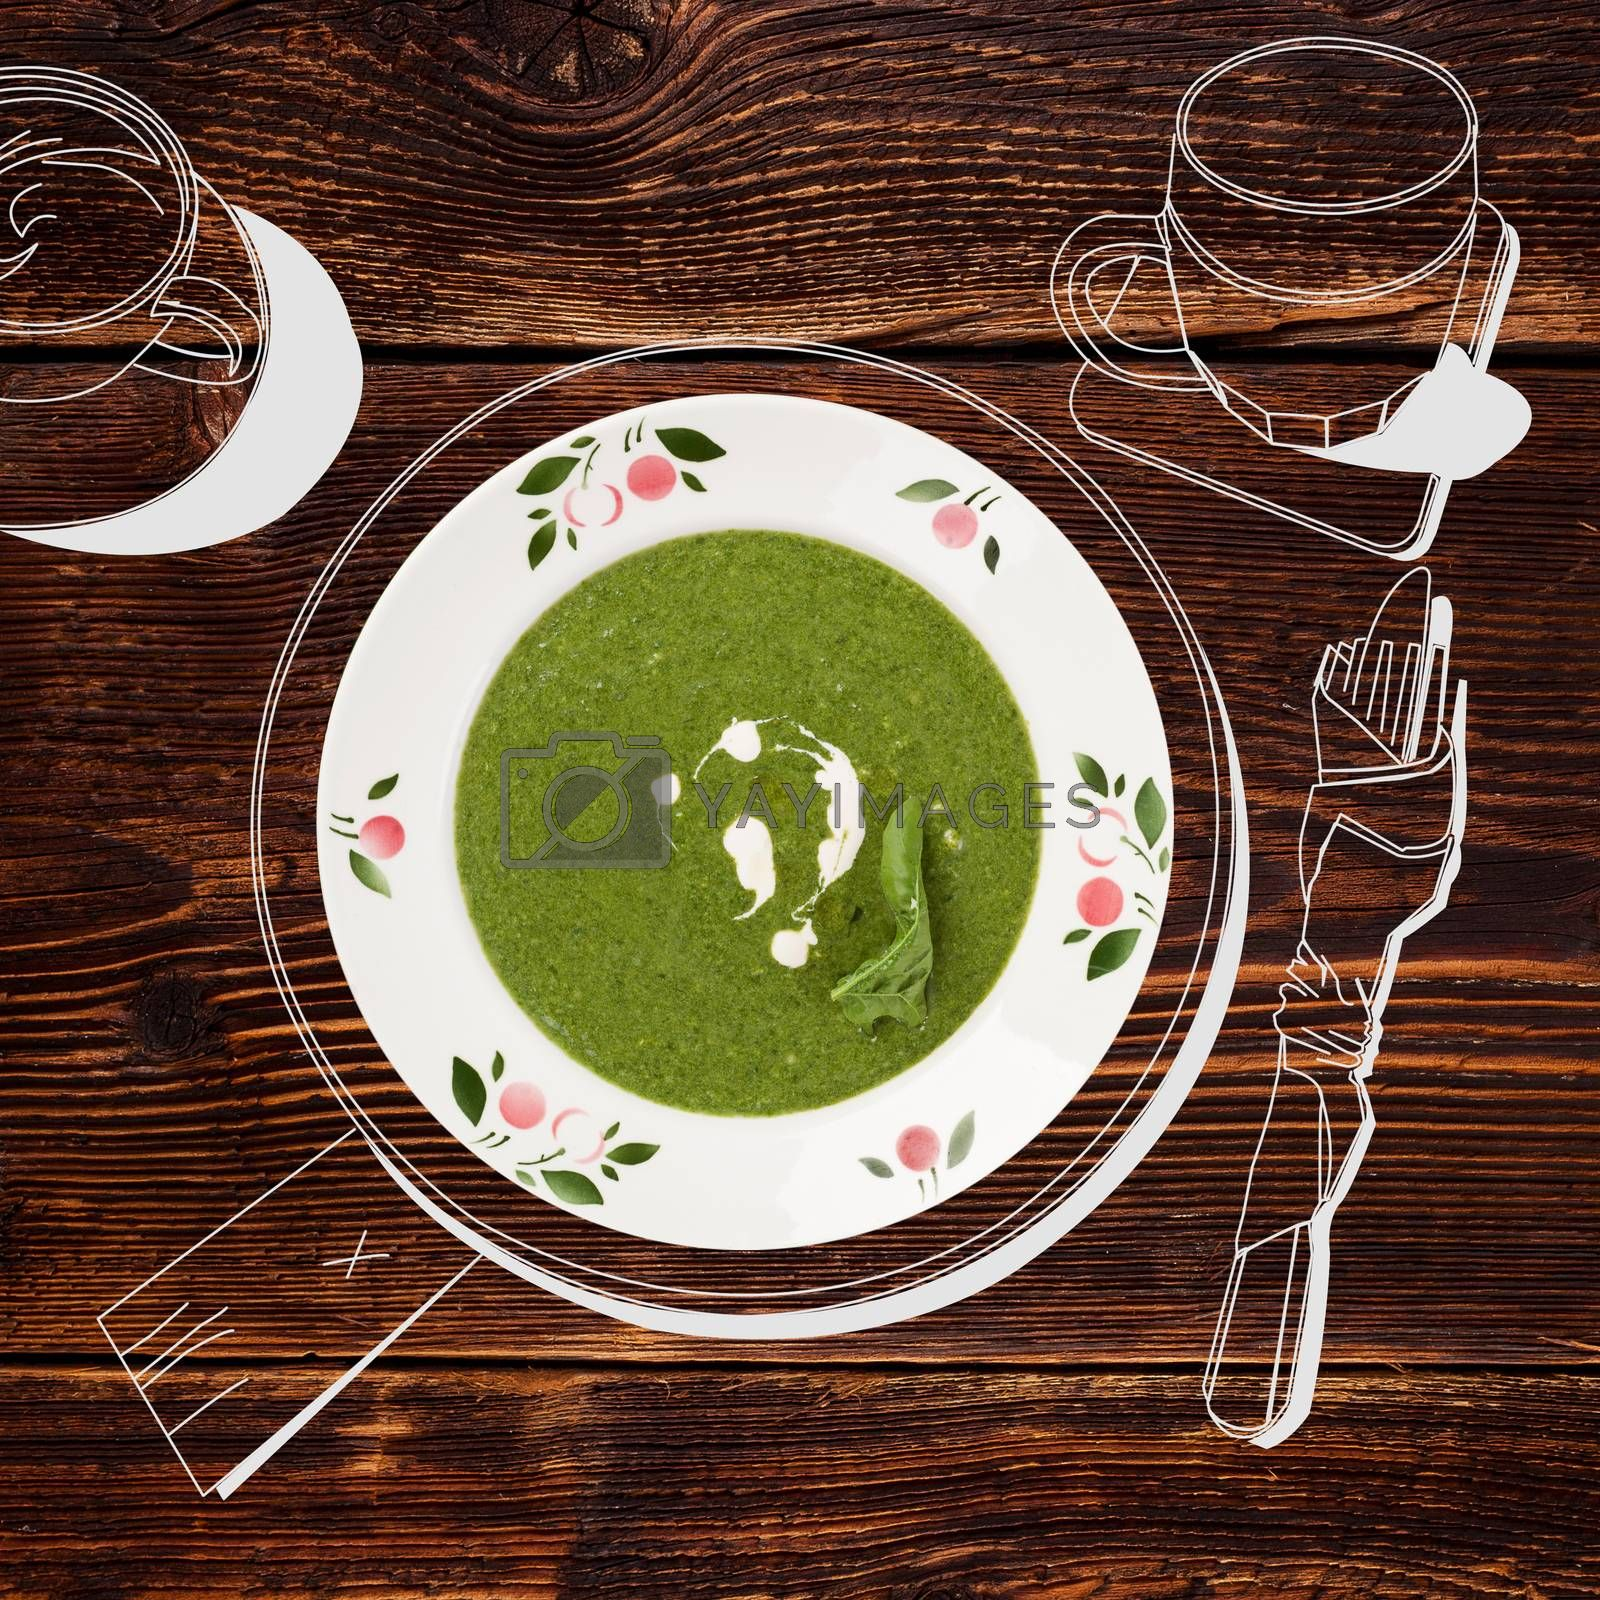 Delicious spinach soup. Fine dining, exquisite luxurious gastronomy background.